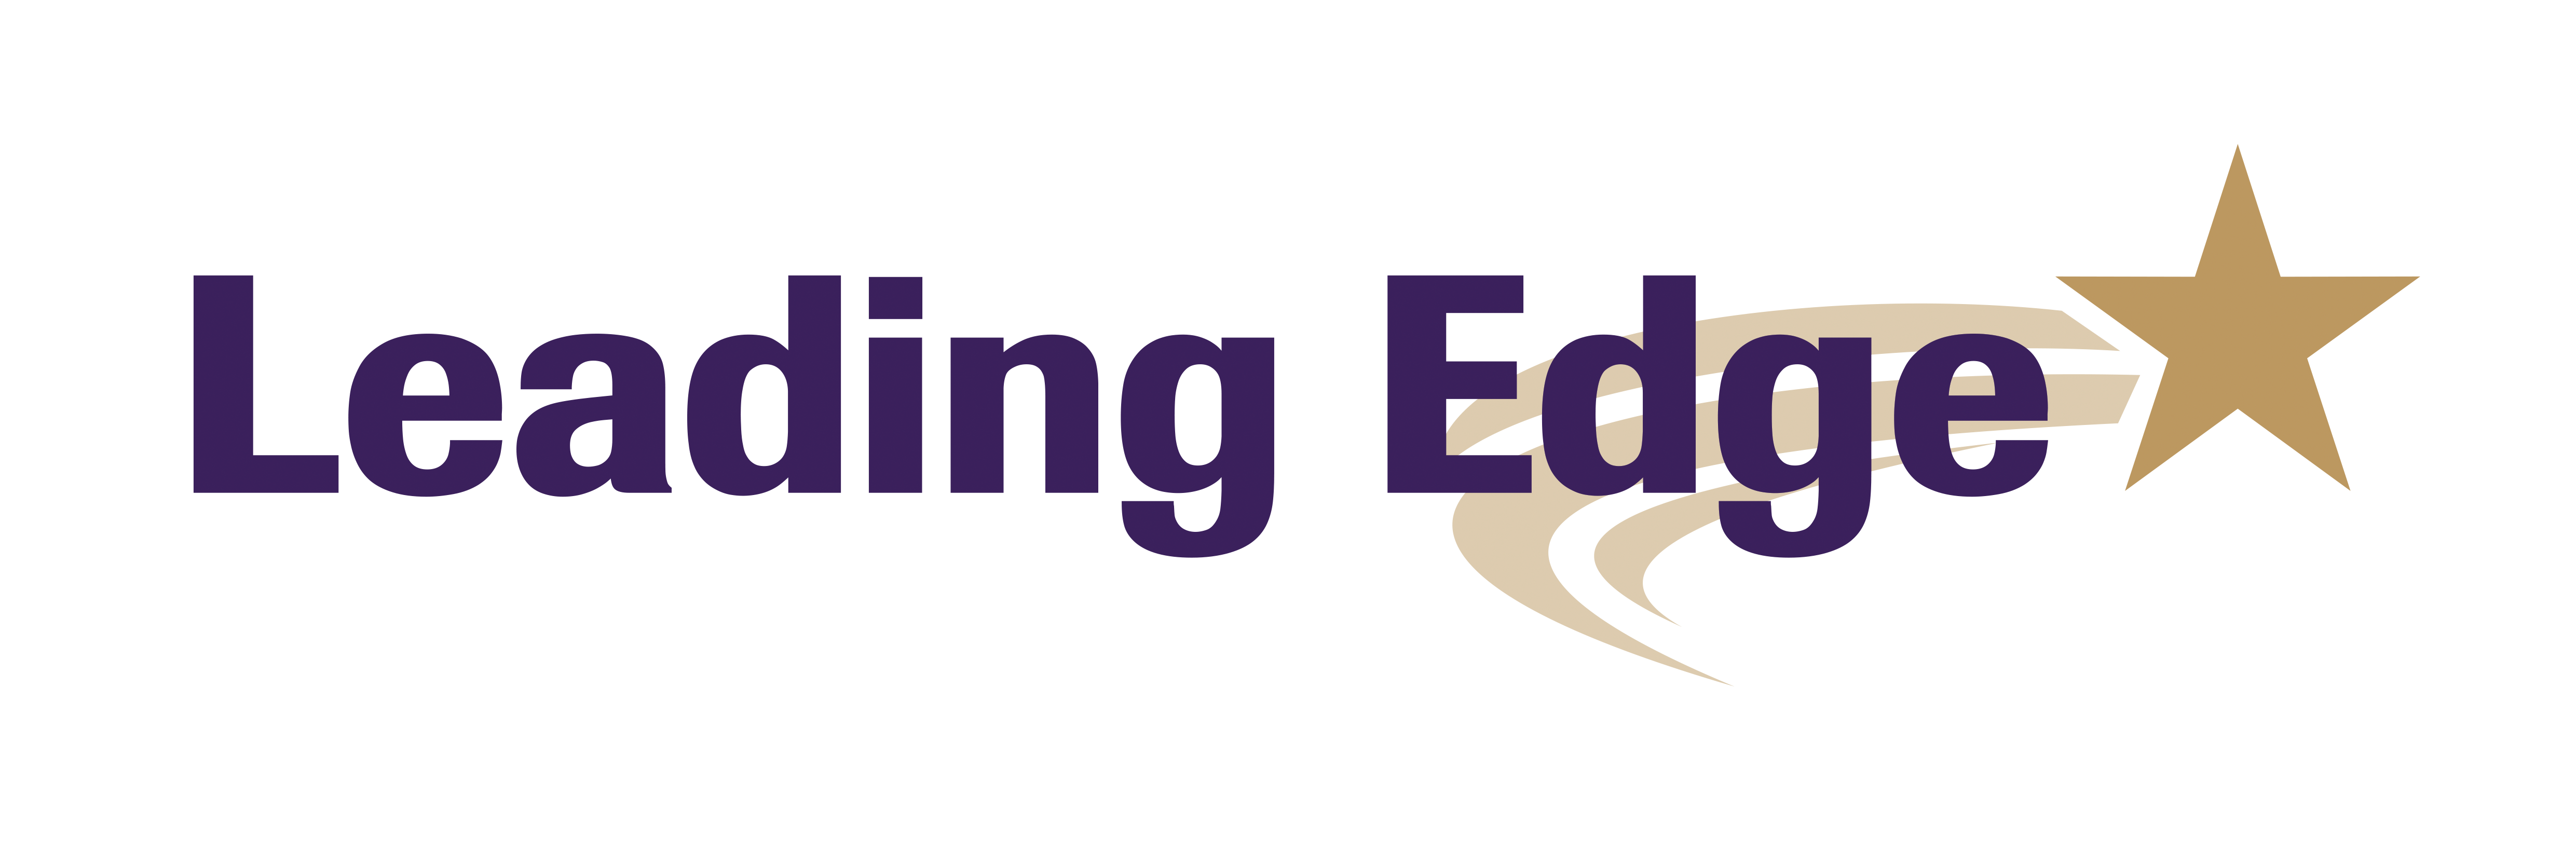 CILT_leadingedge_logo